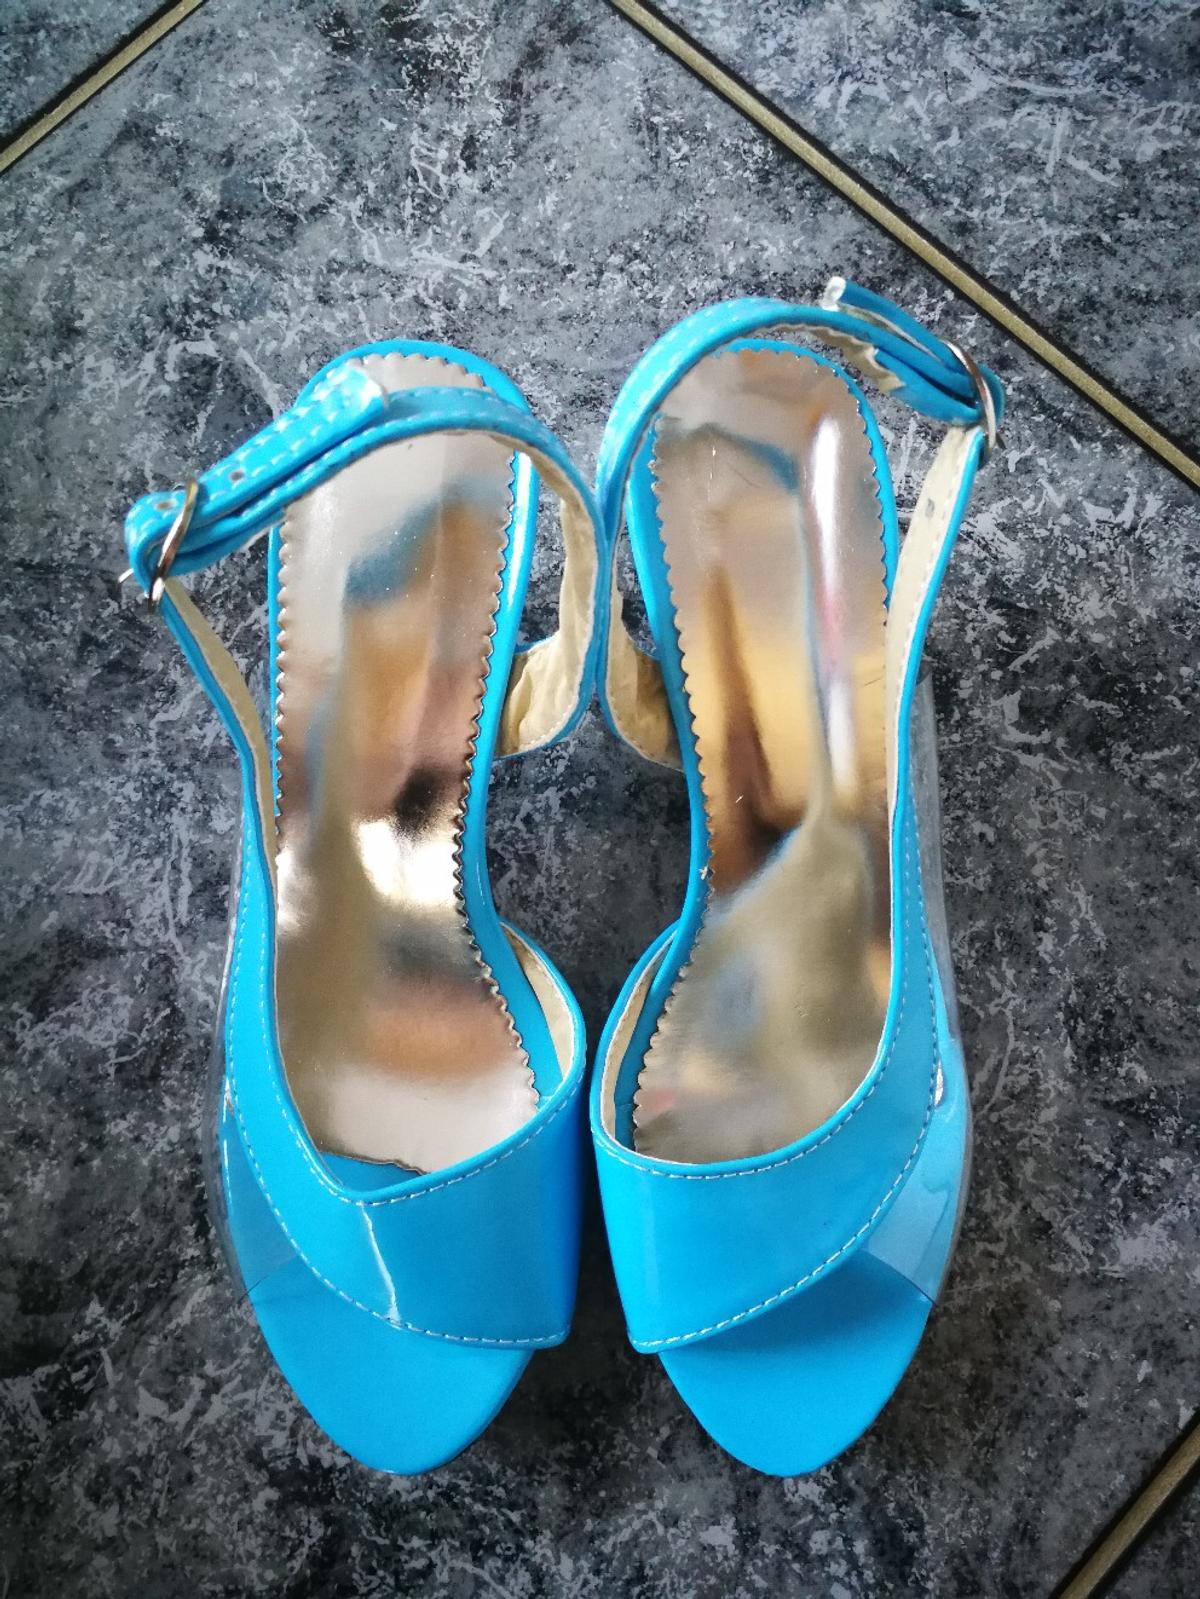 Schicke blaue Pumps in 84163 Marklkofen for €14.00 for sale